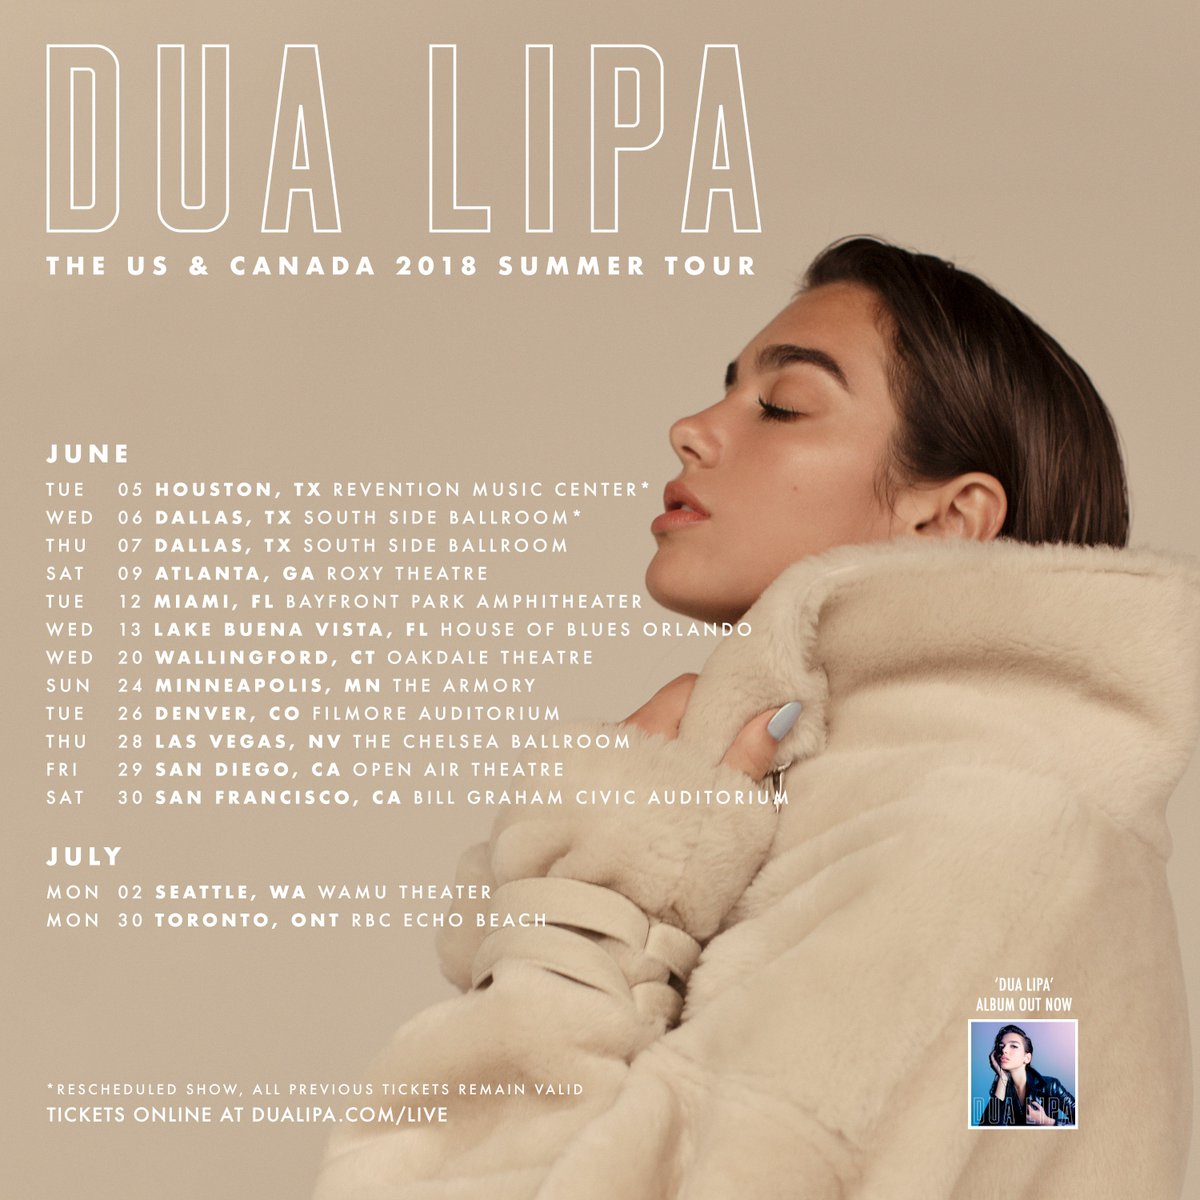 MORE TOUR!! US Tour! Tickets on sale thi...